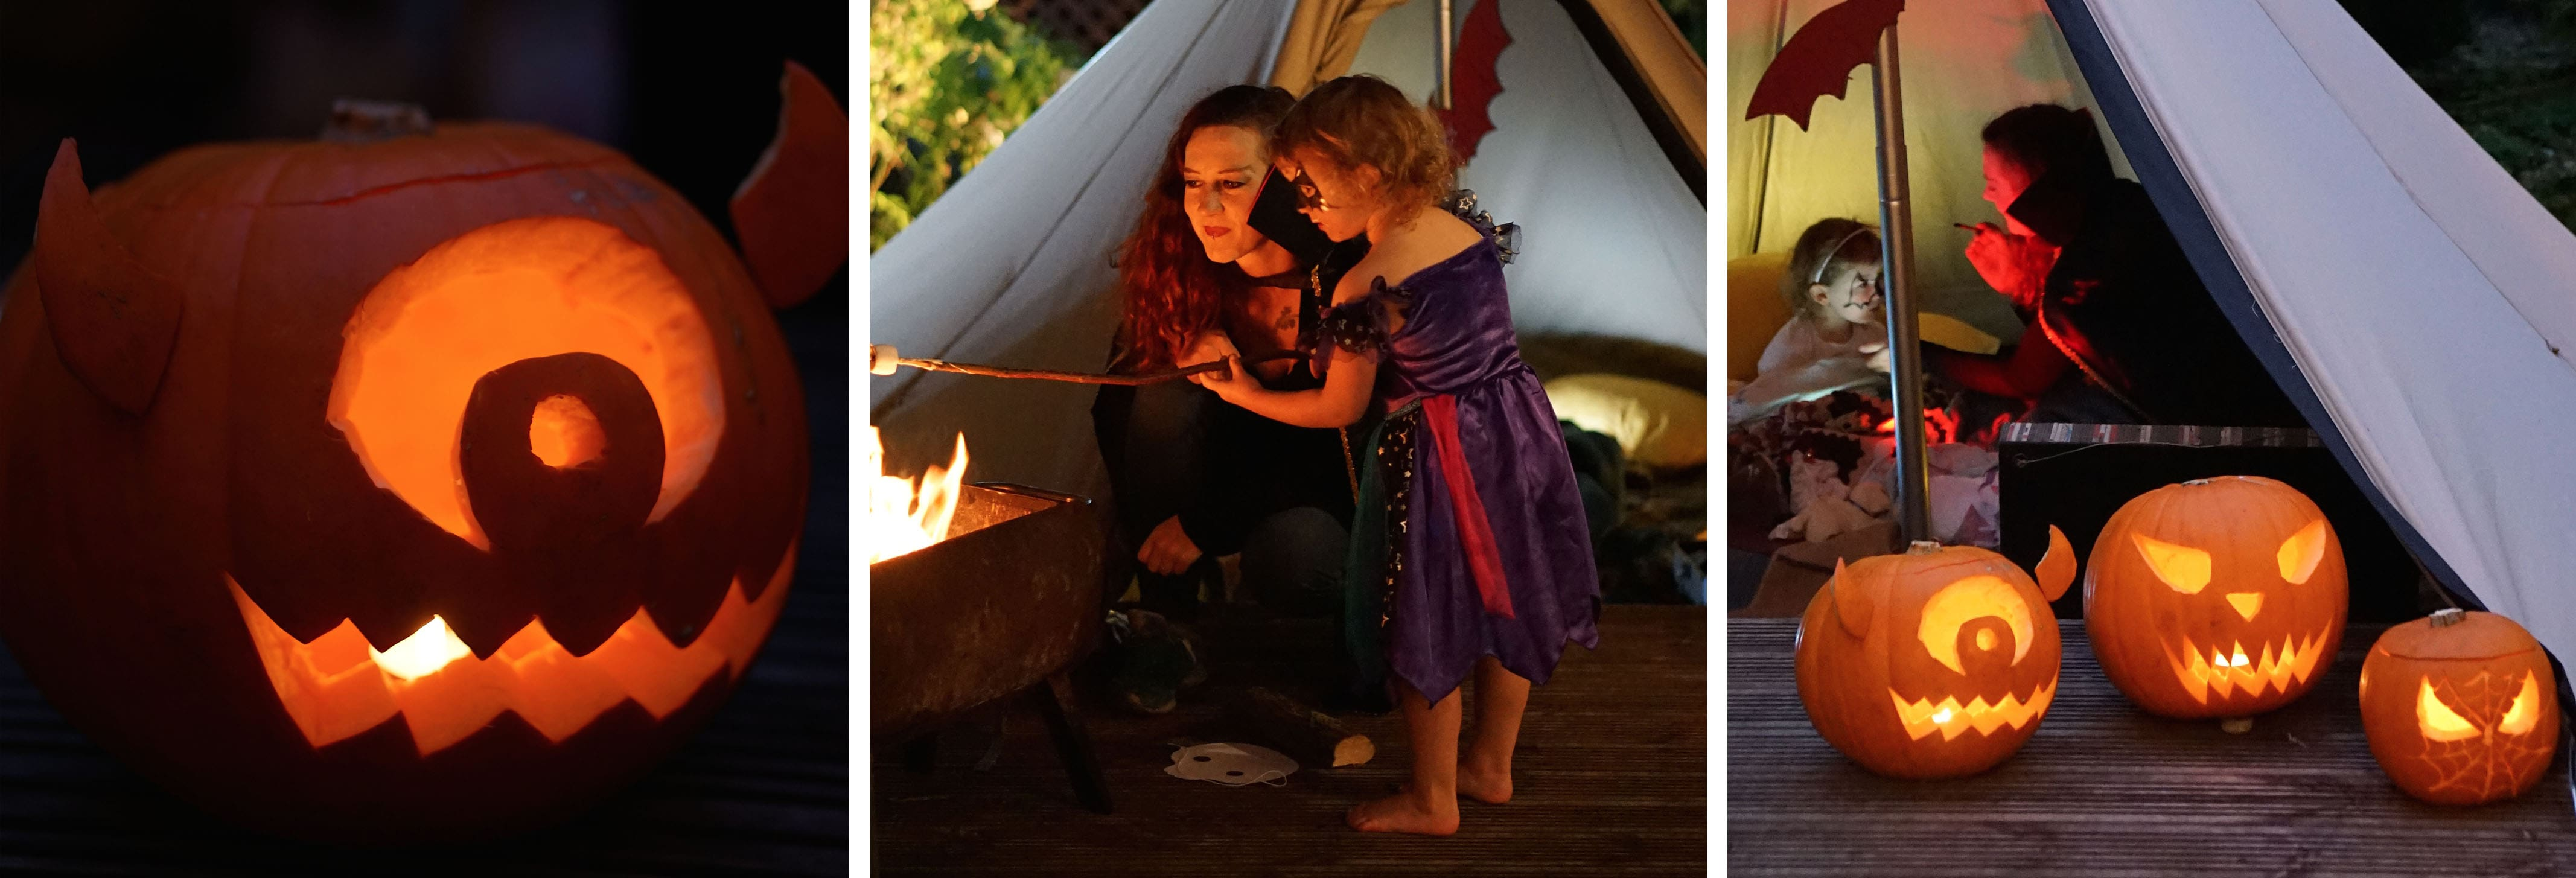 Mother and Daughter at a Halloween Campout in their back garden featuring carved Halloween pumpkins